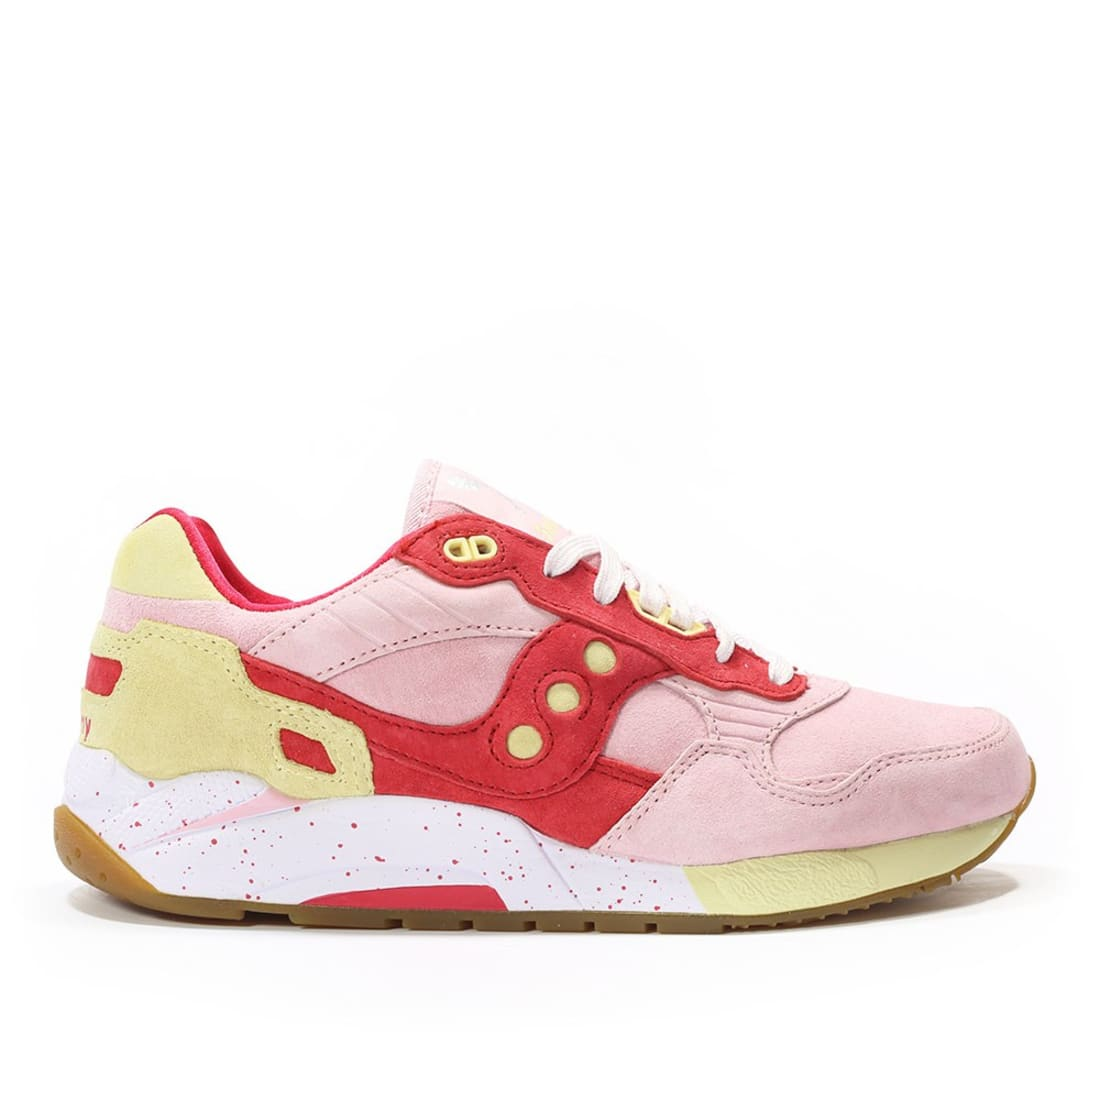 Saucony G9 Shadow 5